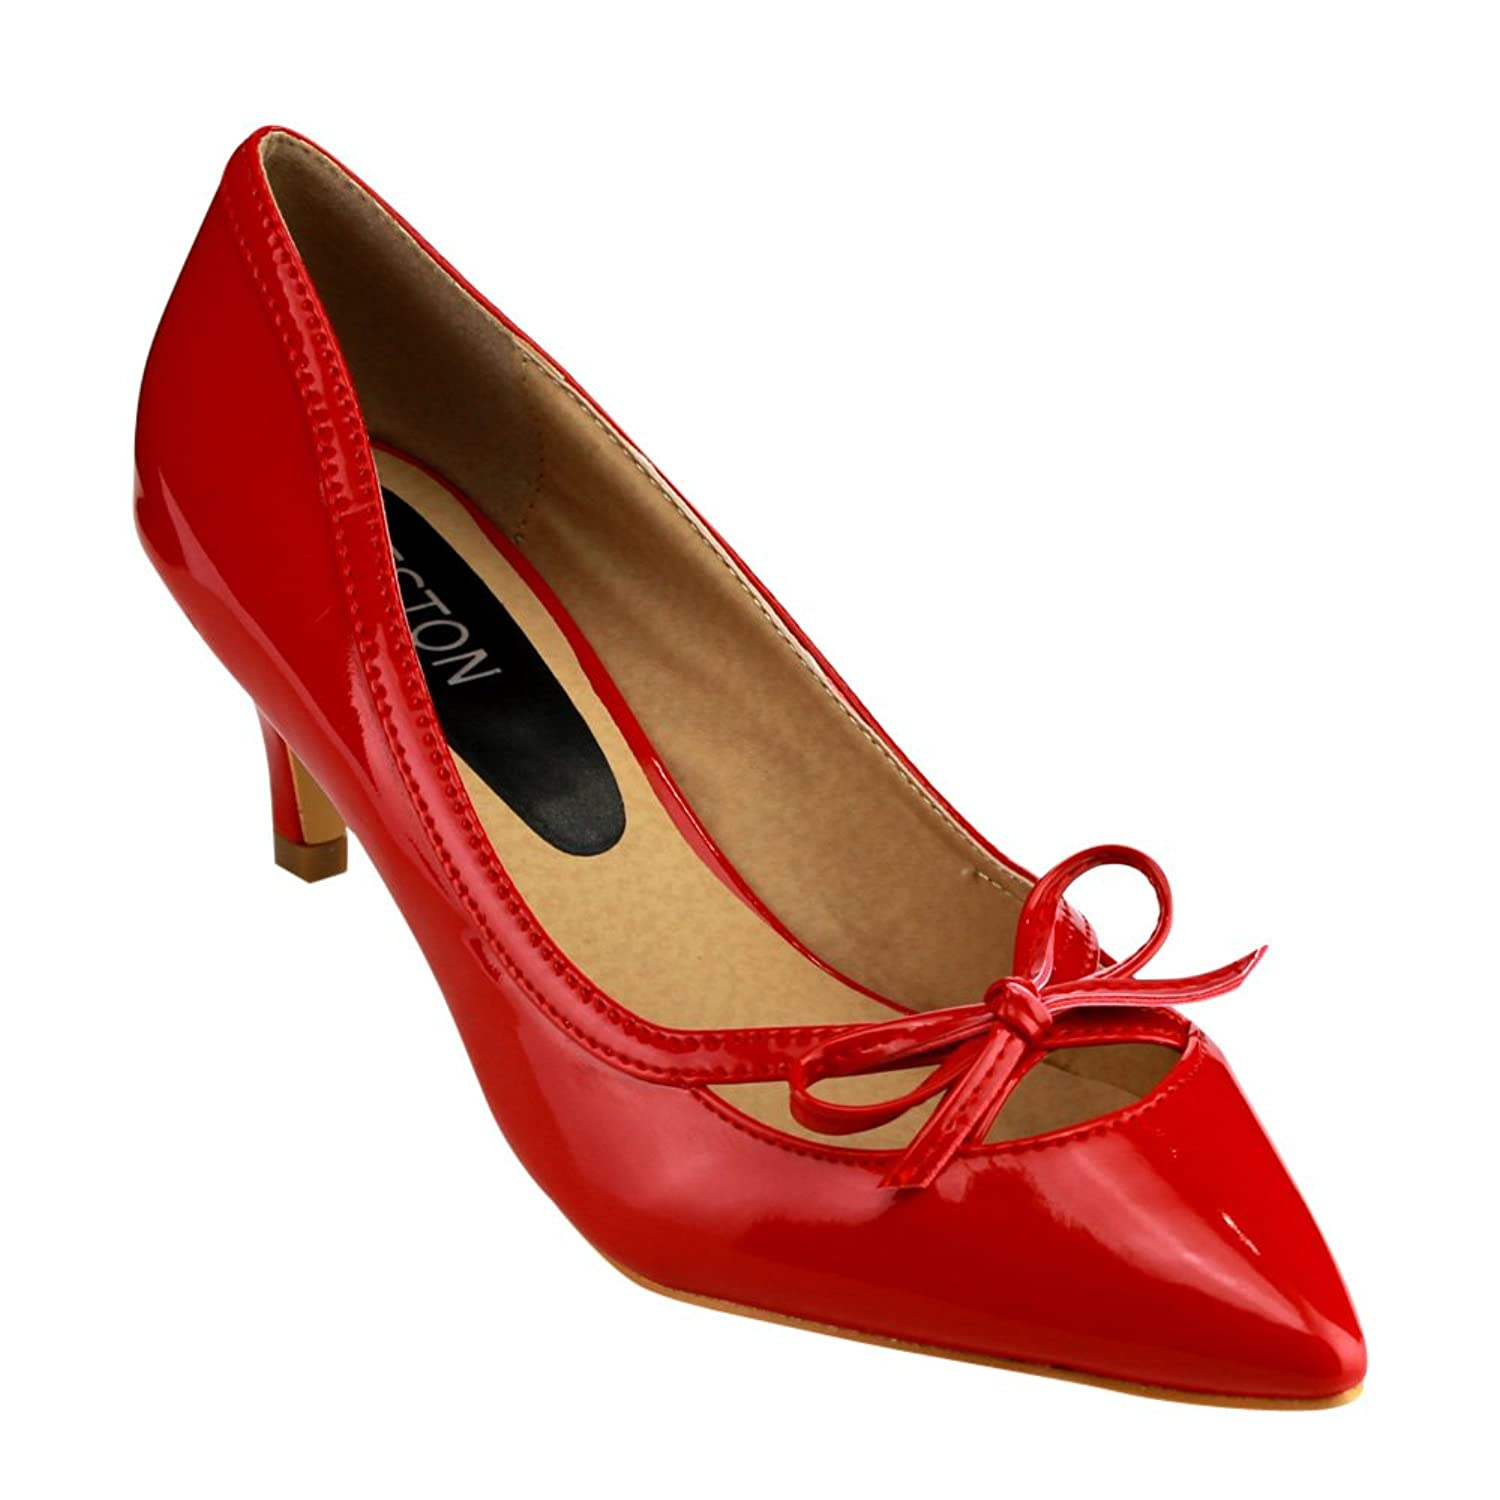 1950s Style Shoes  Pointed Toe Low Heels Bowknot Deco Pump $27.49 AT vintagedancer.com